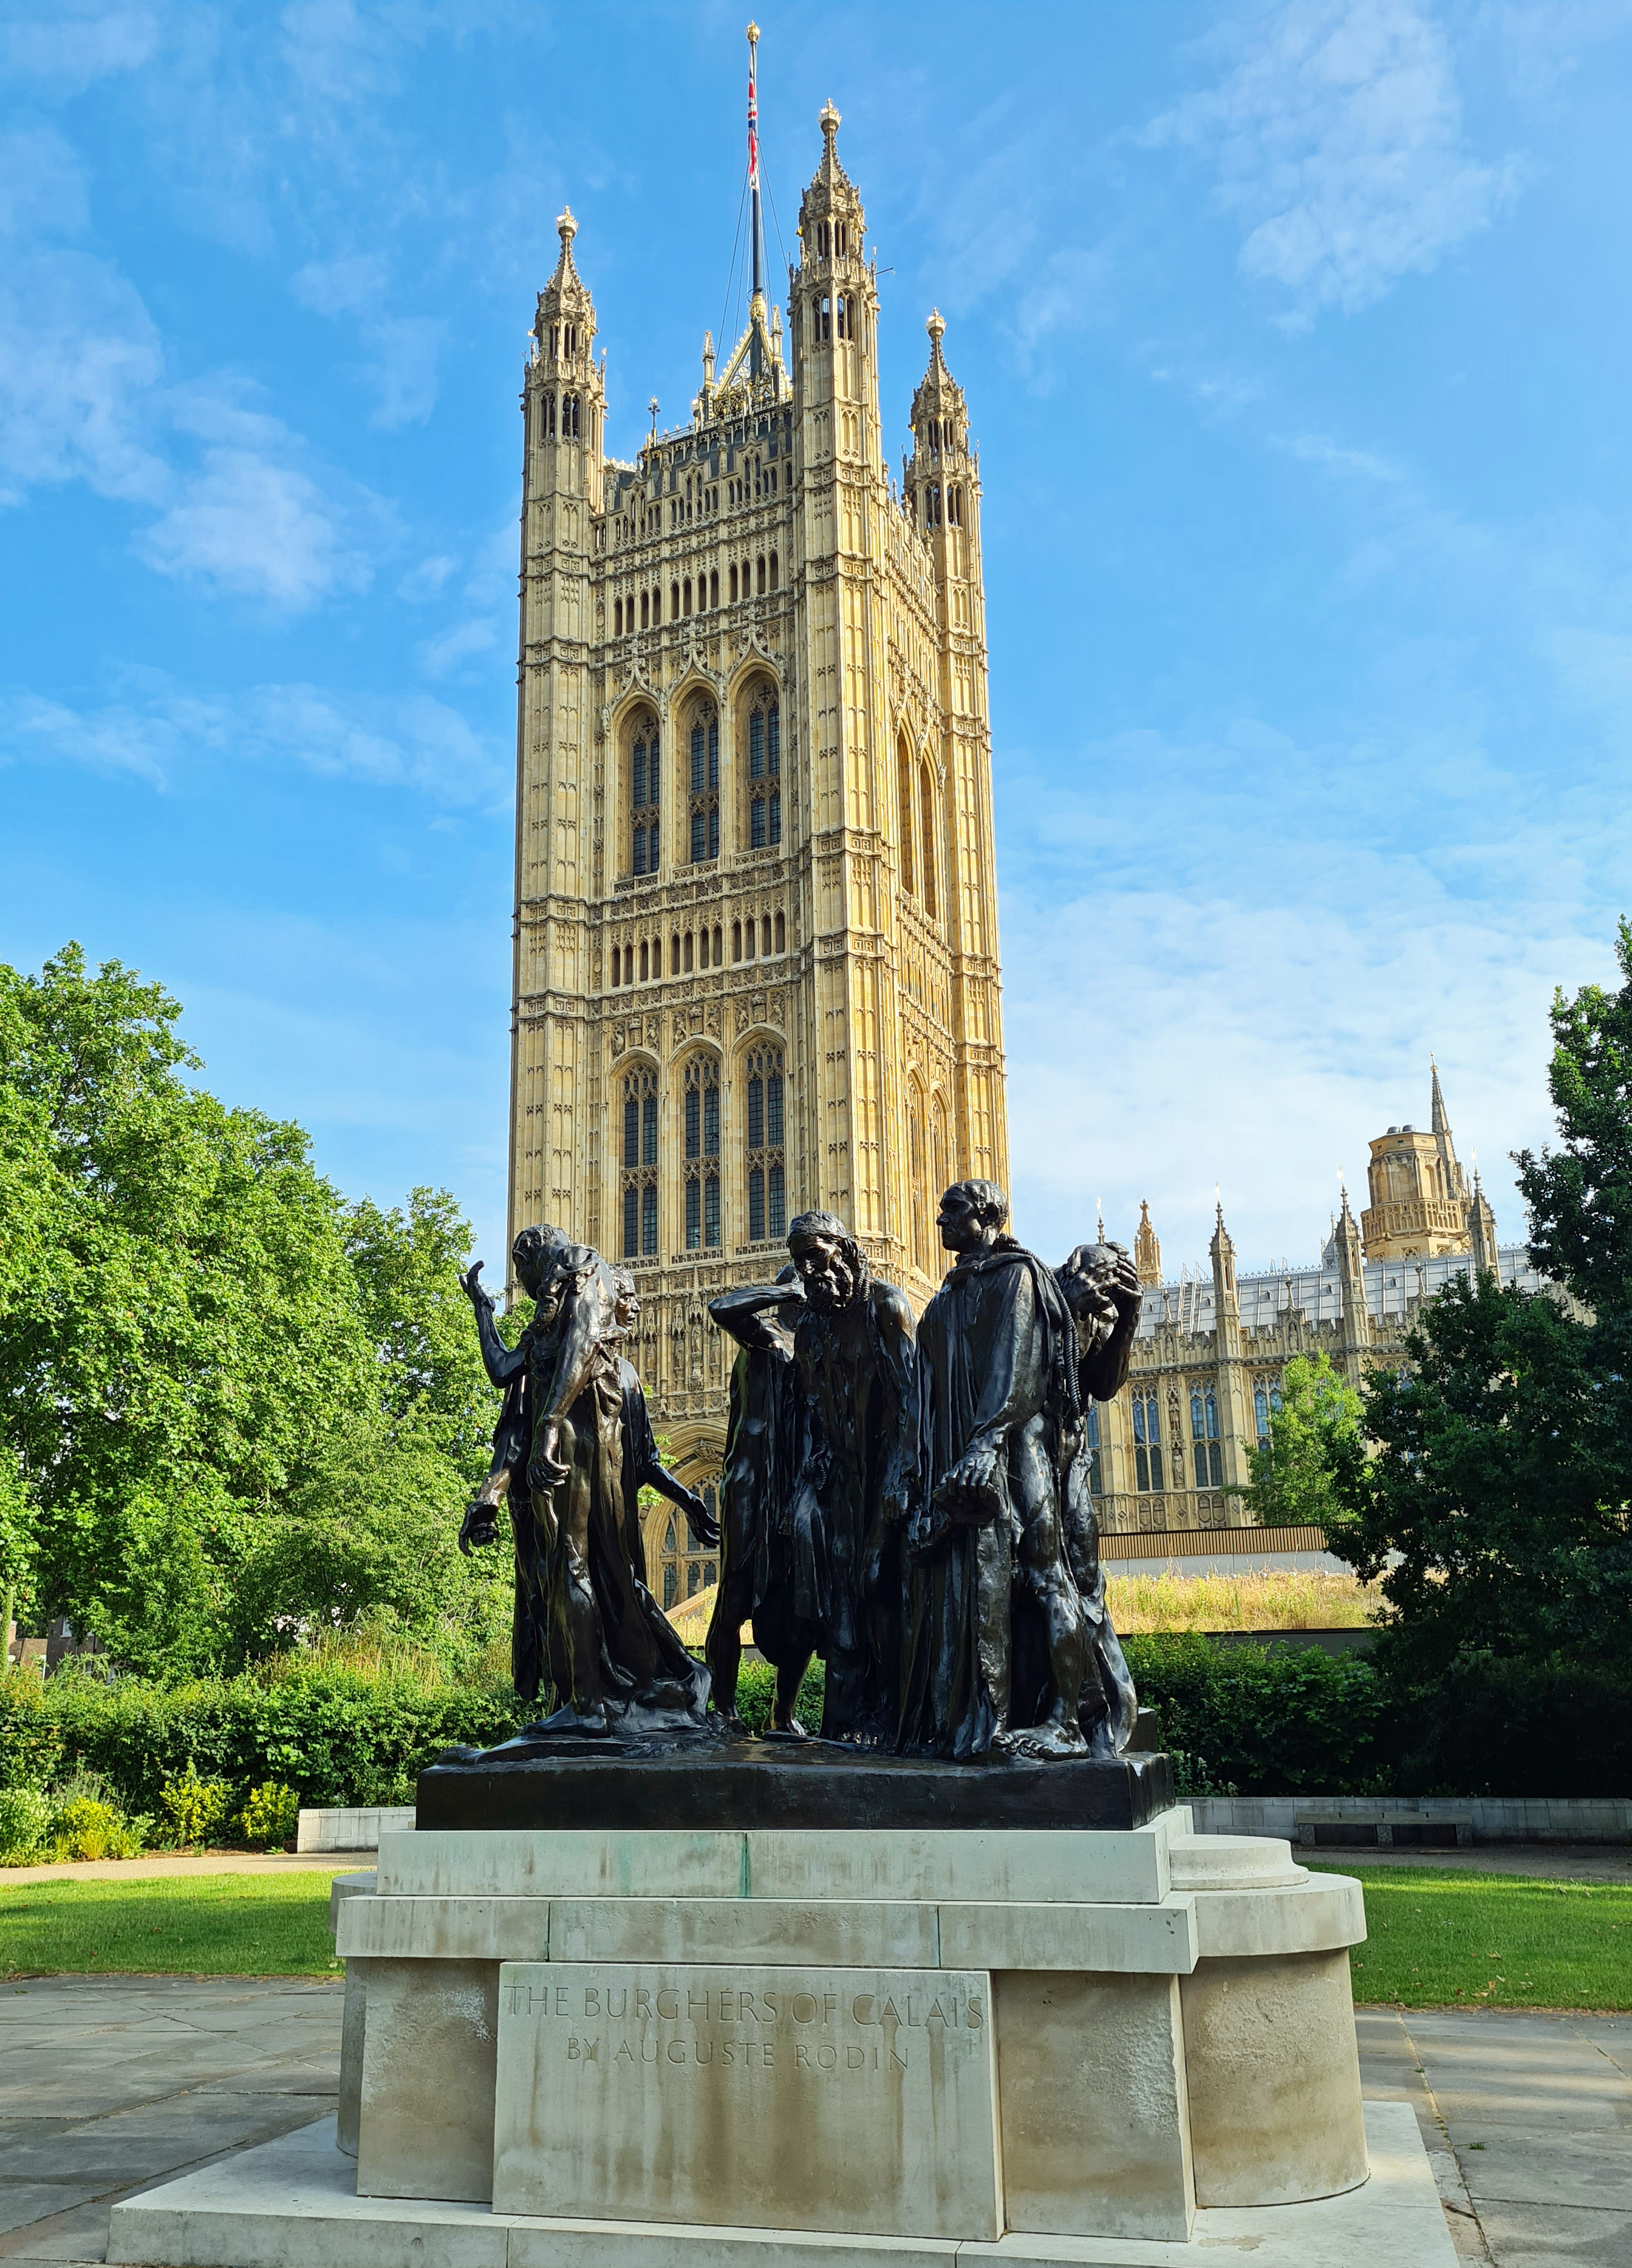 The Burghers of Calais, Auguste Rodin. Victorian Tower Gardens, Houses of Parliament